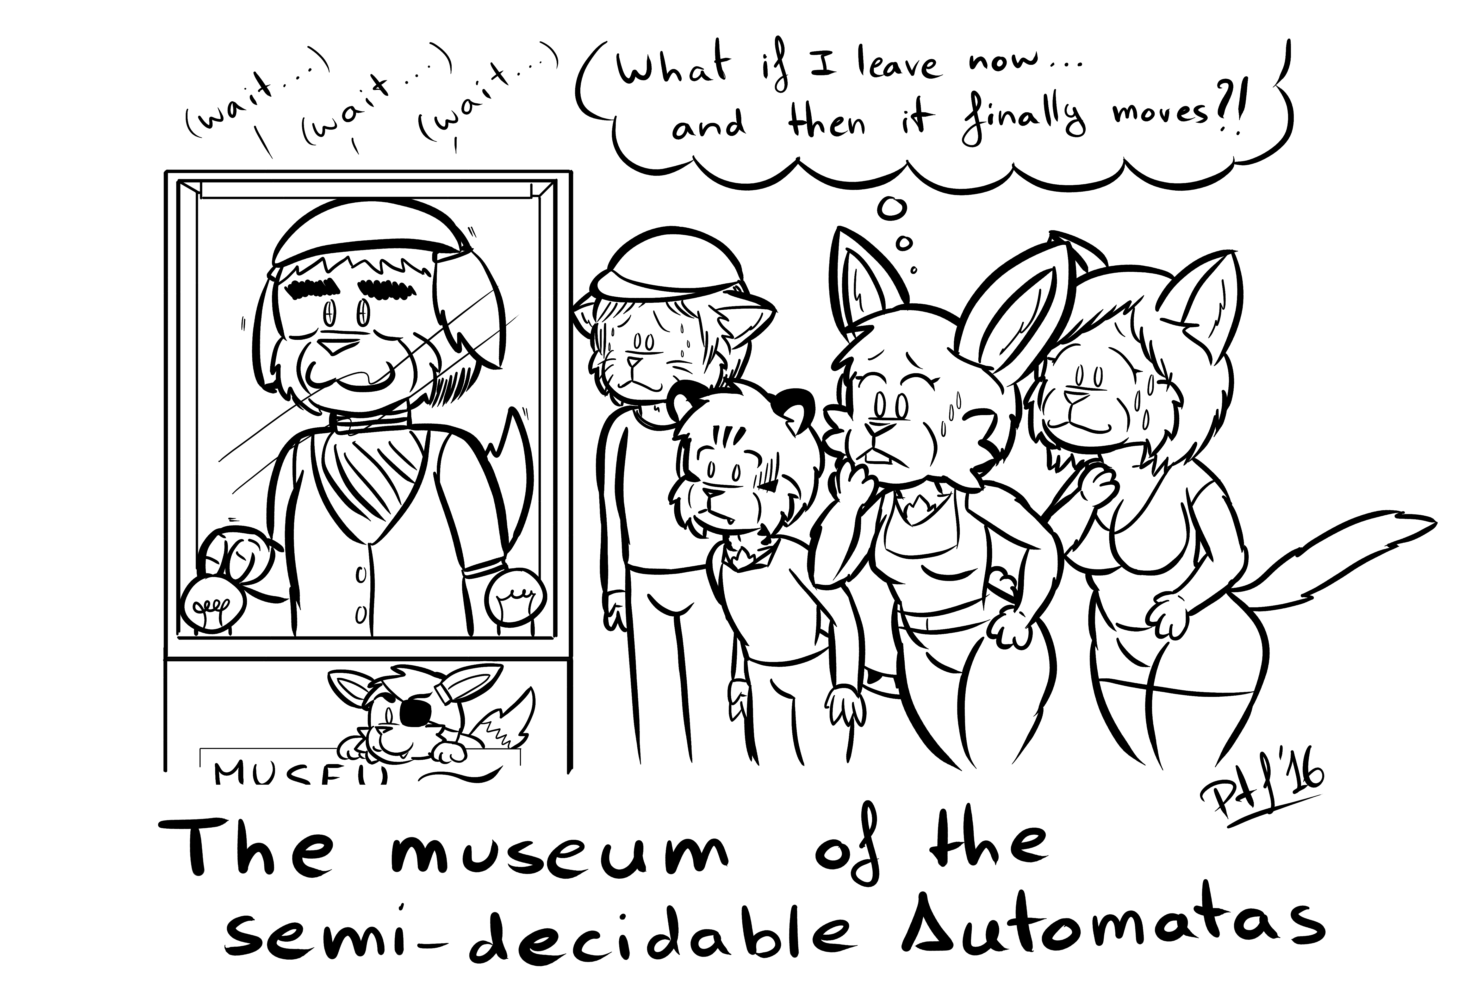 The Museum of Semi-Decidable Automatas